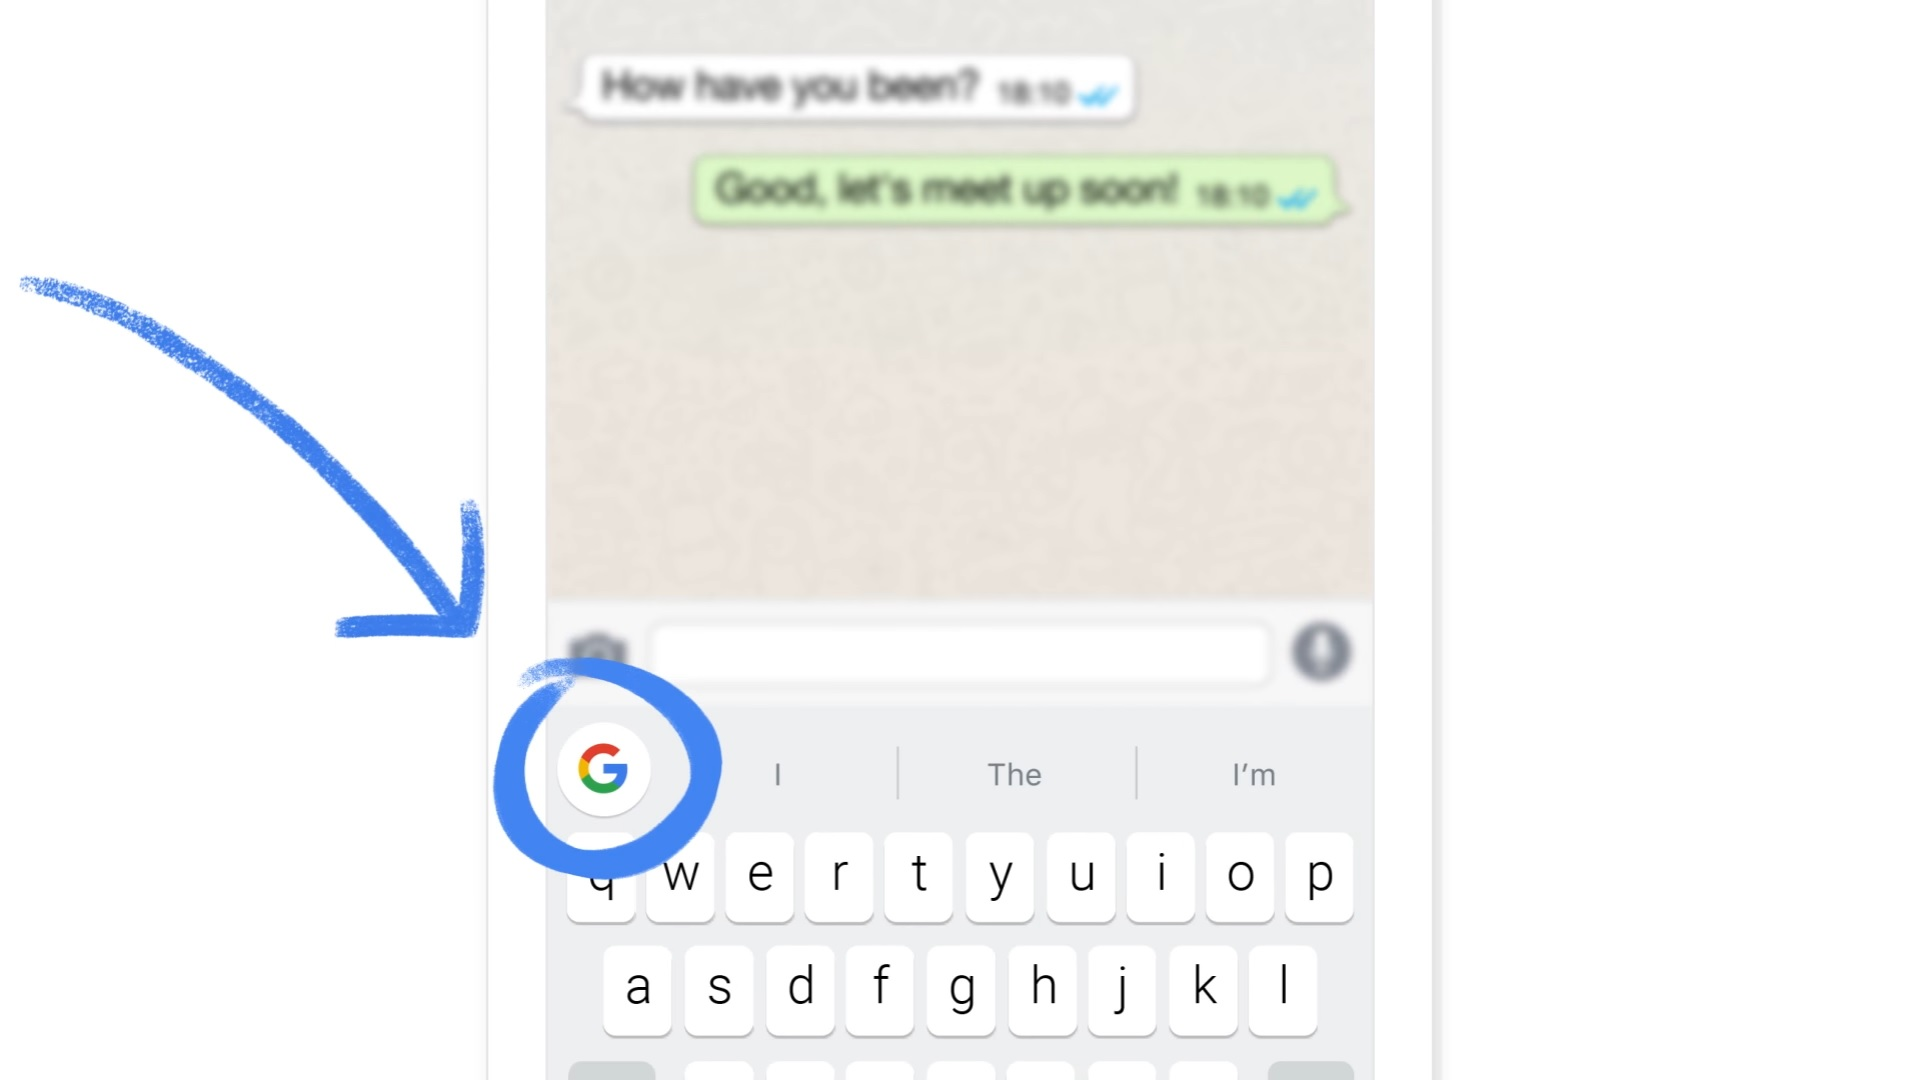 Modojo | You Can Now Use Google's Gboard Keyboard on Android Devices